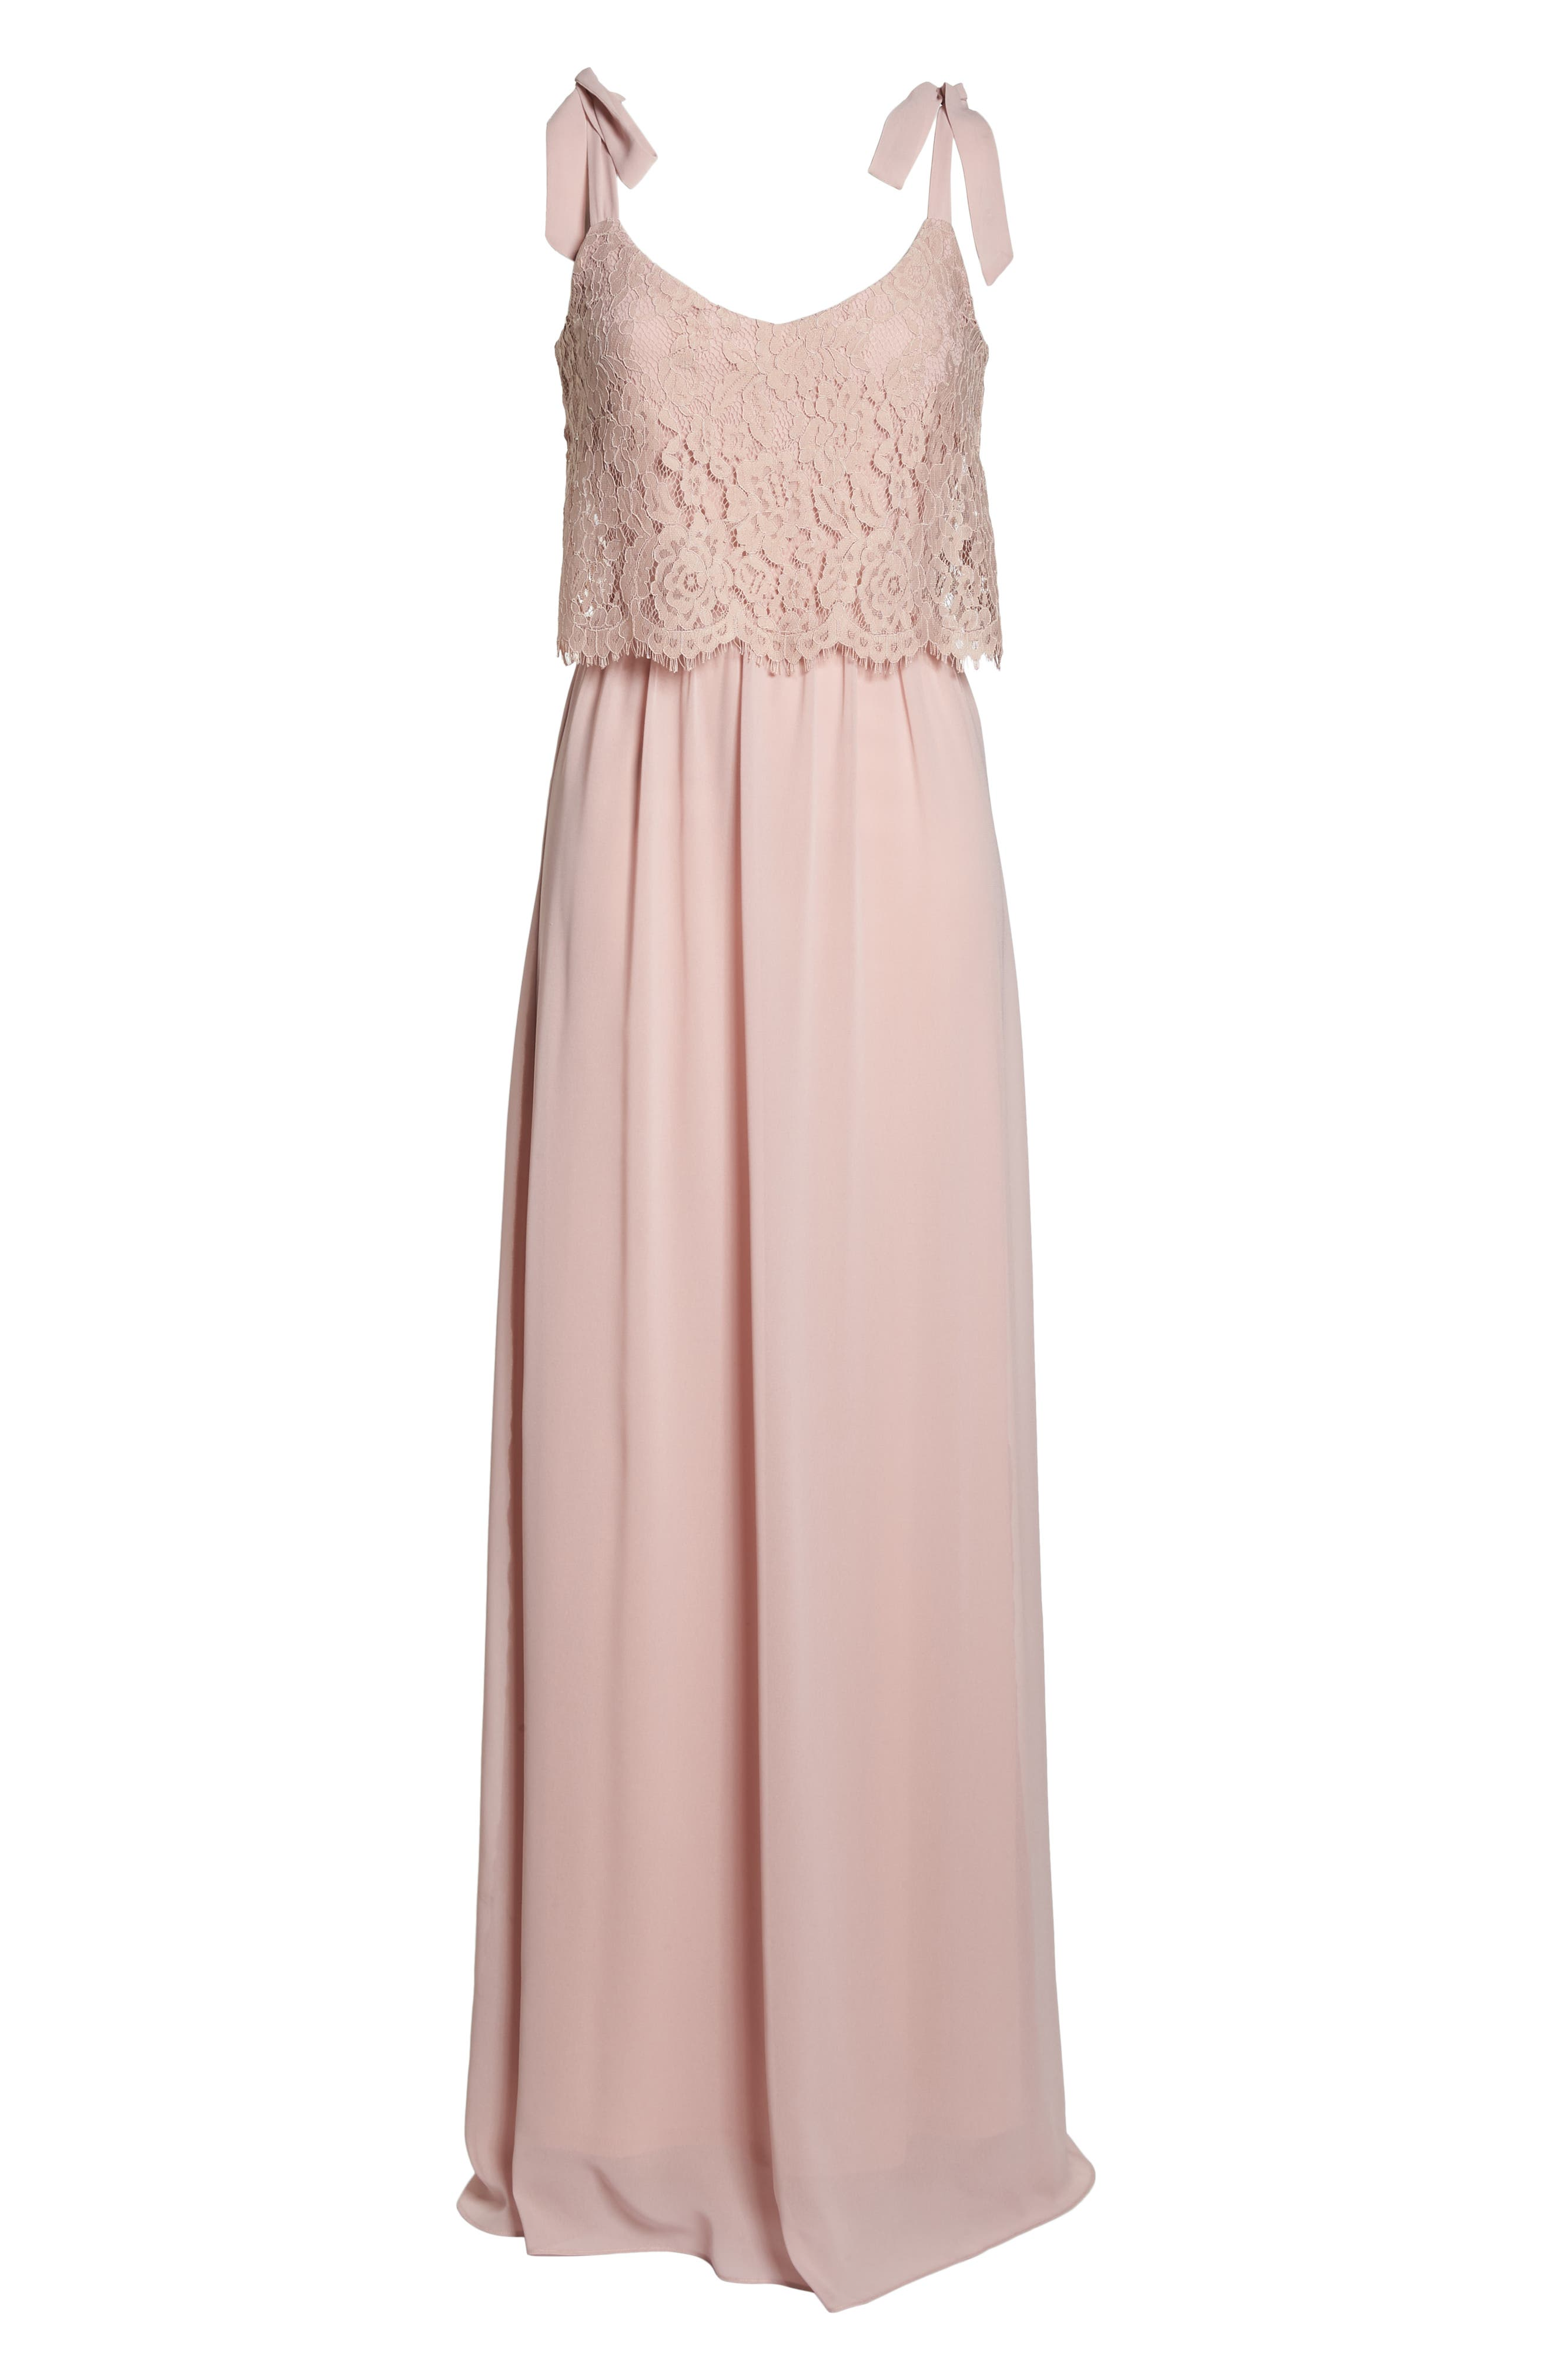 Koko Tie Shoulder Lace Bodice Gown,                             Alternate thumbnail 8, color,                             MAUVE